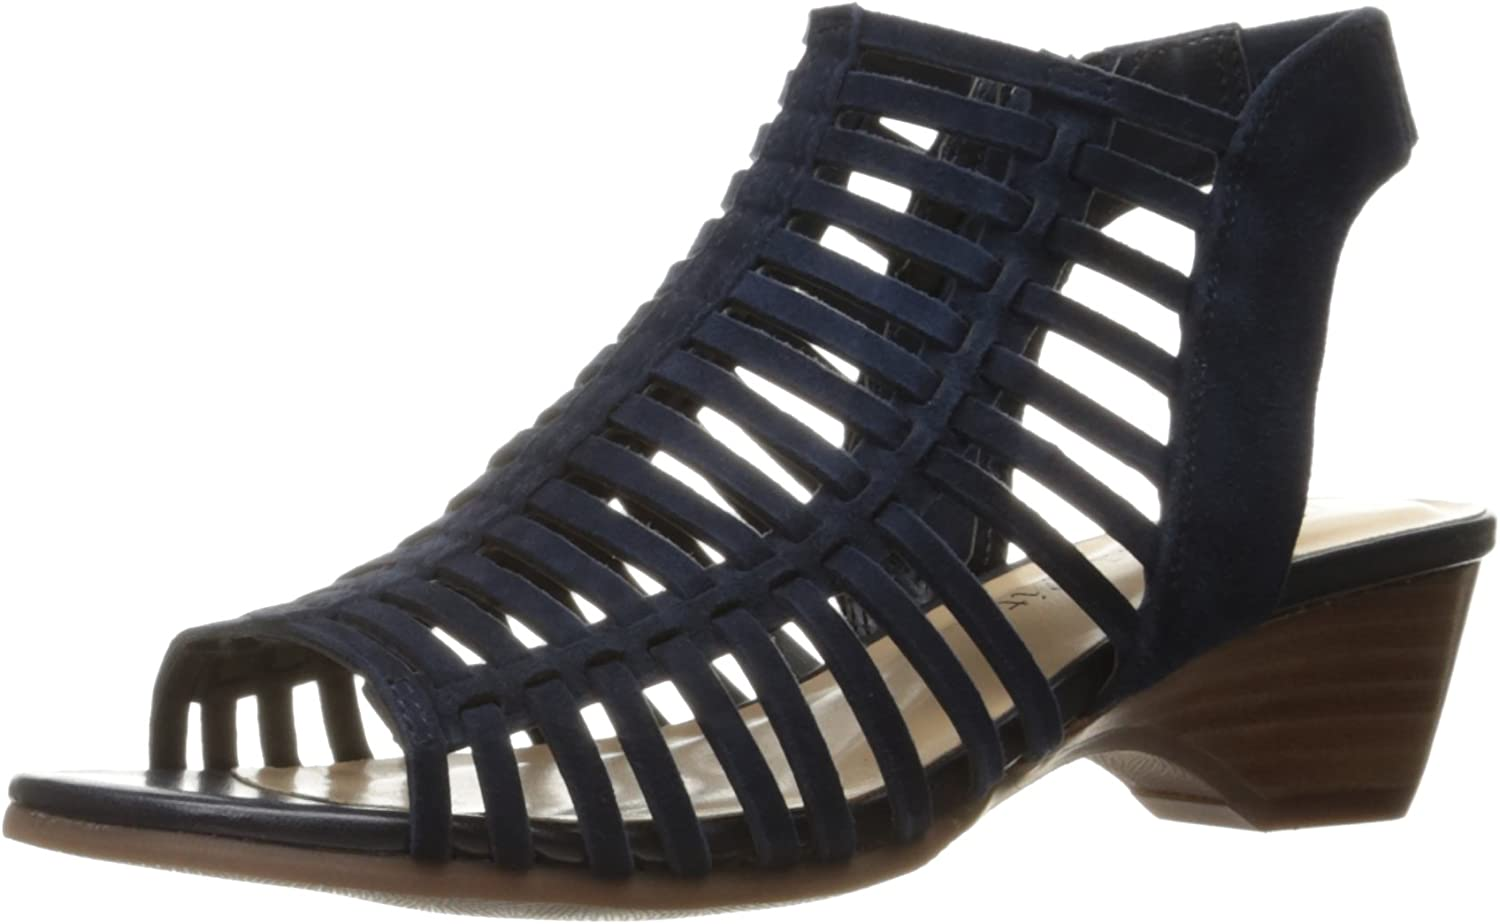 Bella Max 79% OFF Vita Women's Wedge Sandal Challenge the lowest price of Japan ☆ Pacey